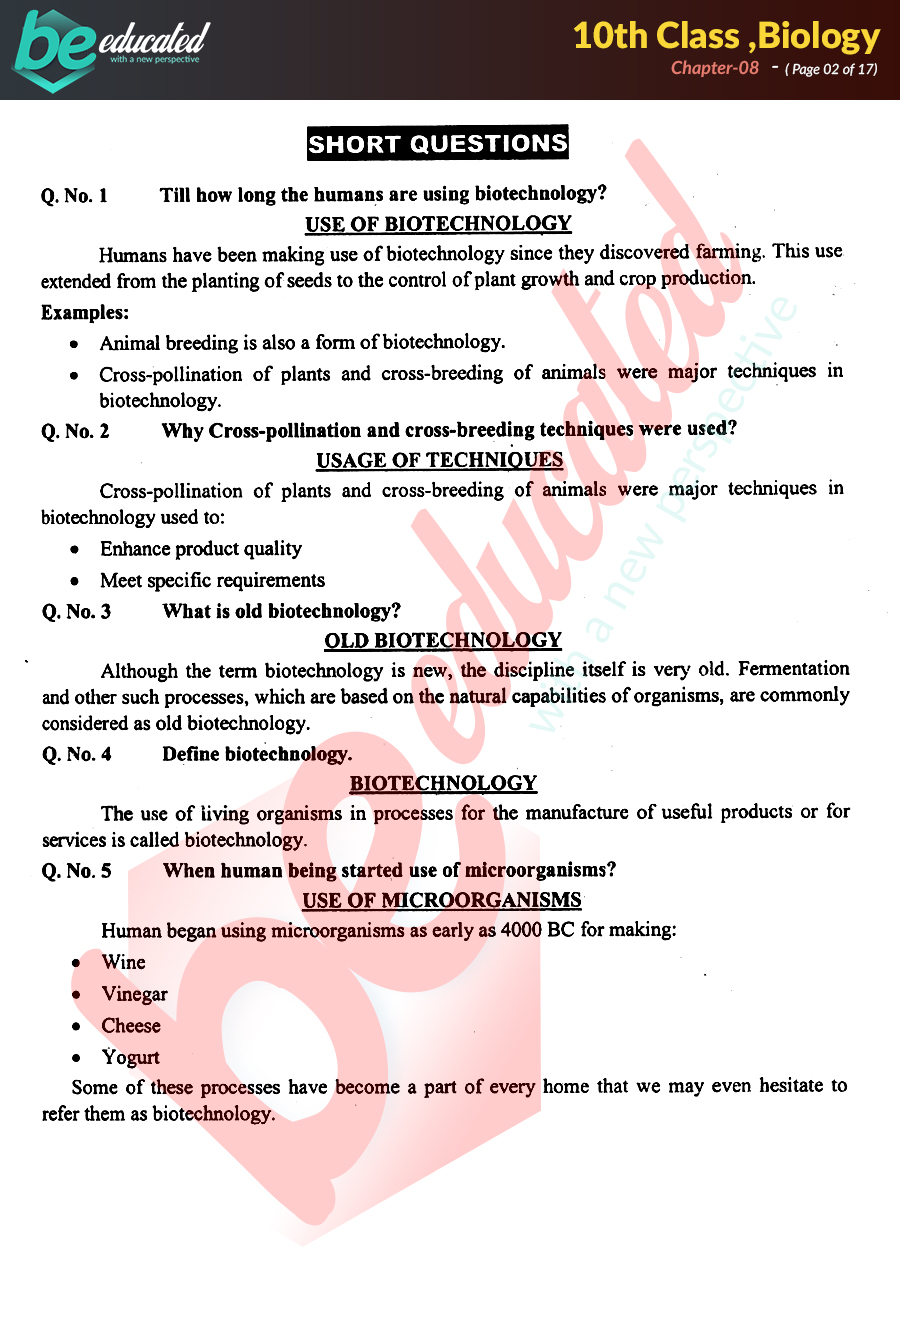 Chapter 8 Biology 10th Class Notes - Matric Part 2 Notes